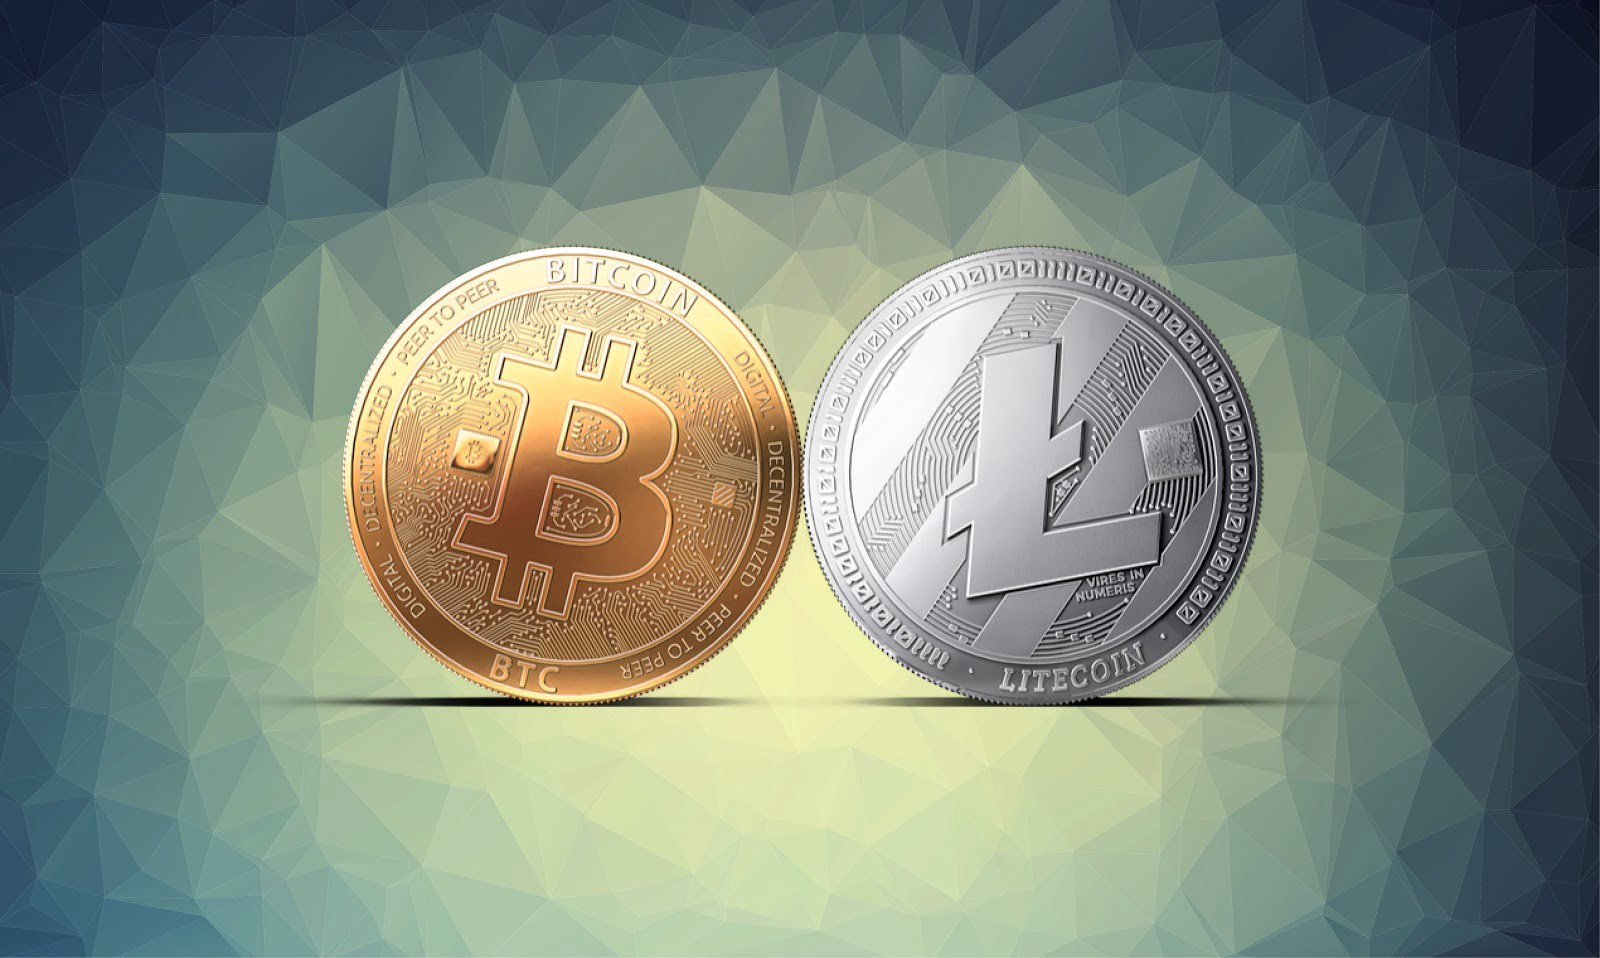 differences between bitcoin and litecoin